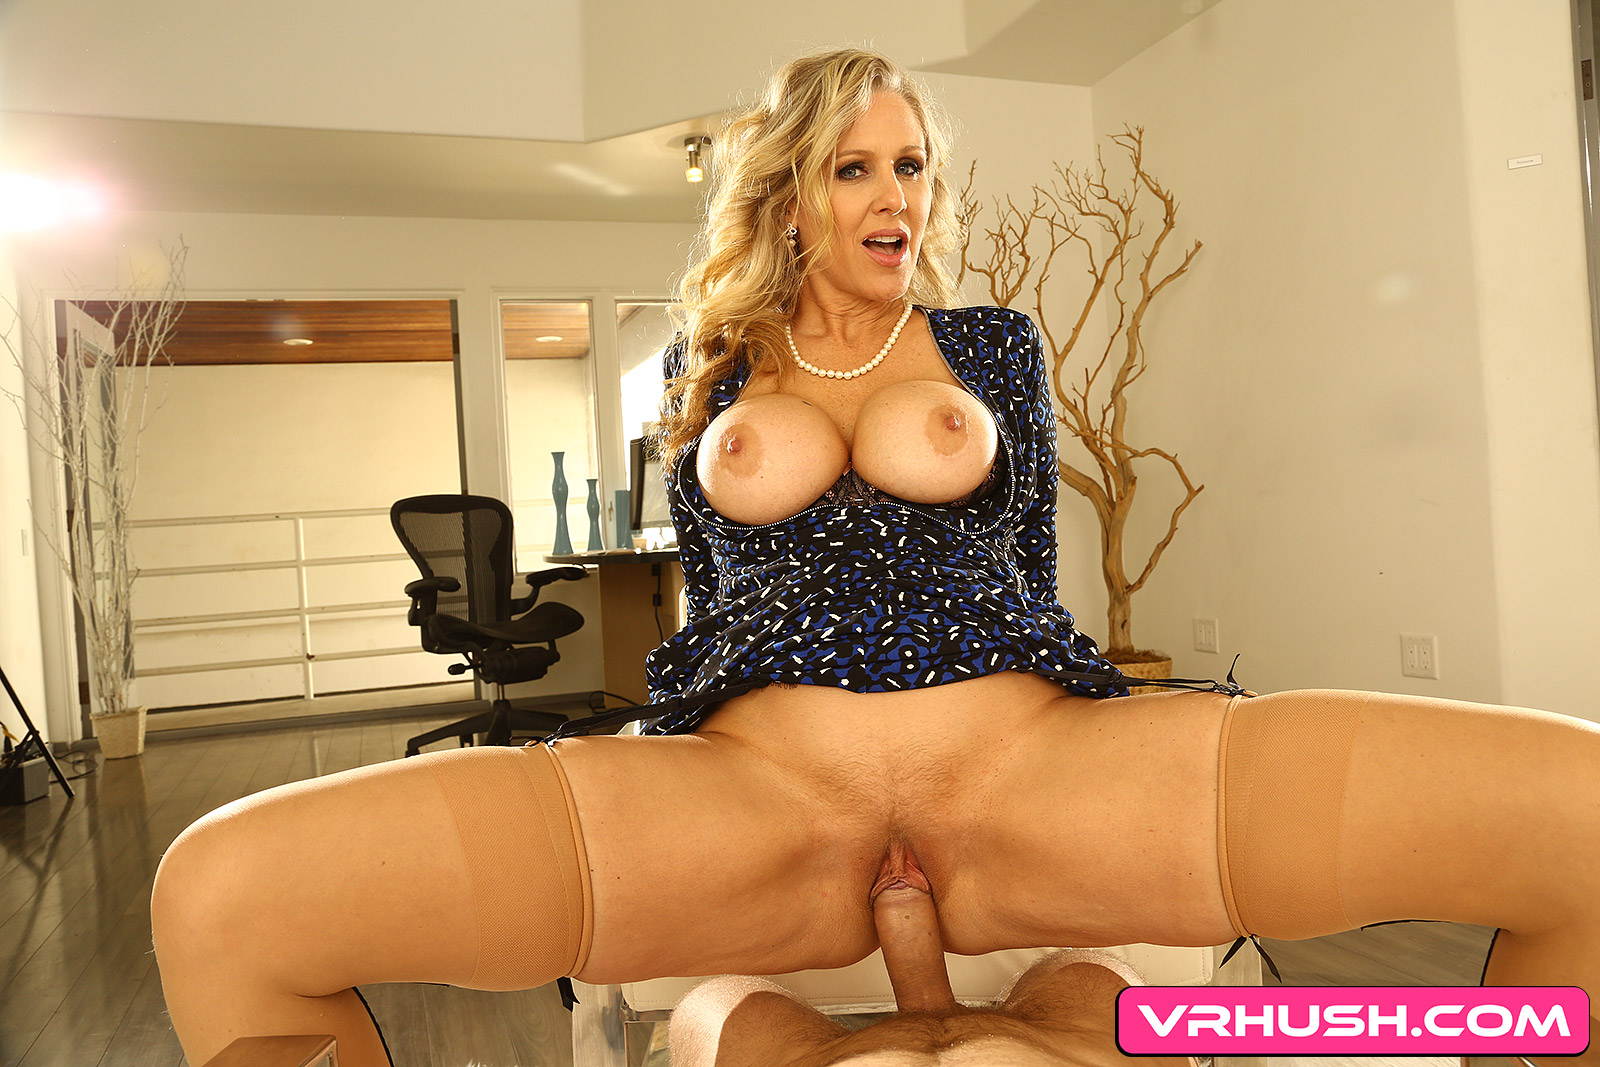 Blonde Milf Showing You the Way - Busty Cougar Rides Dick Julia Ann